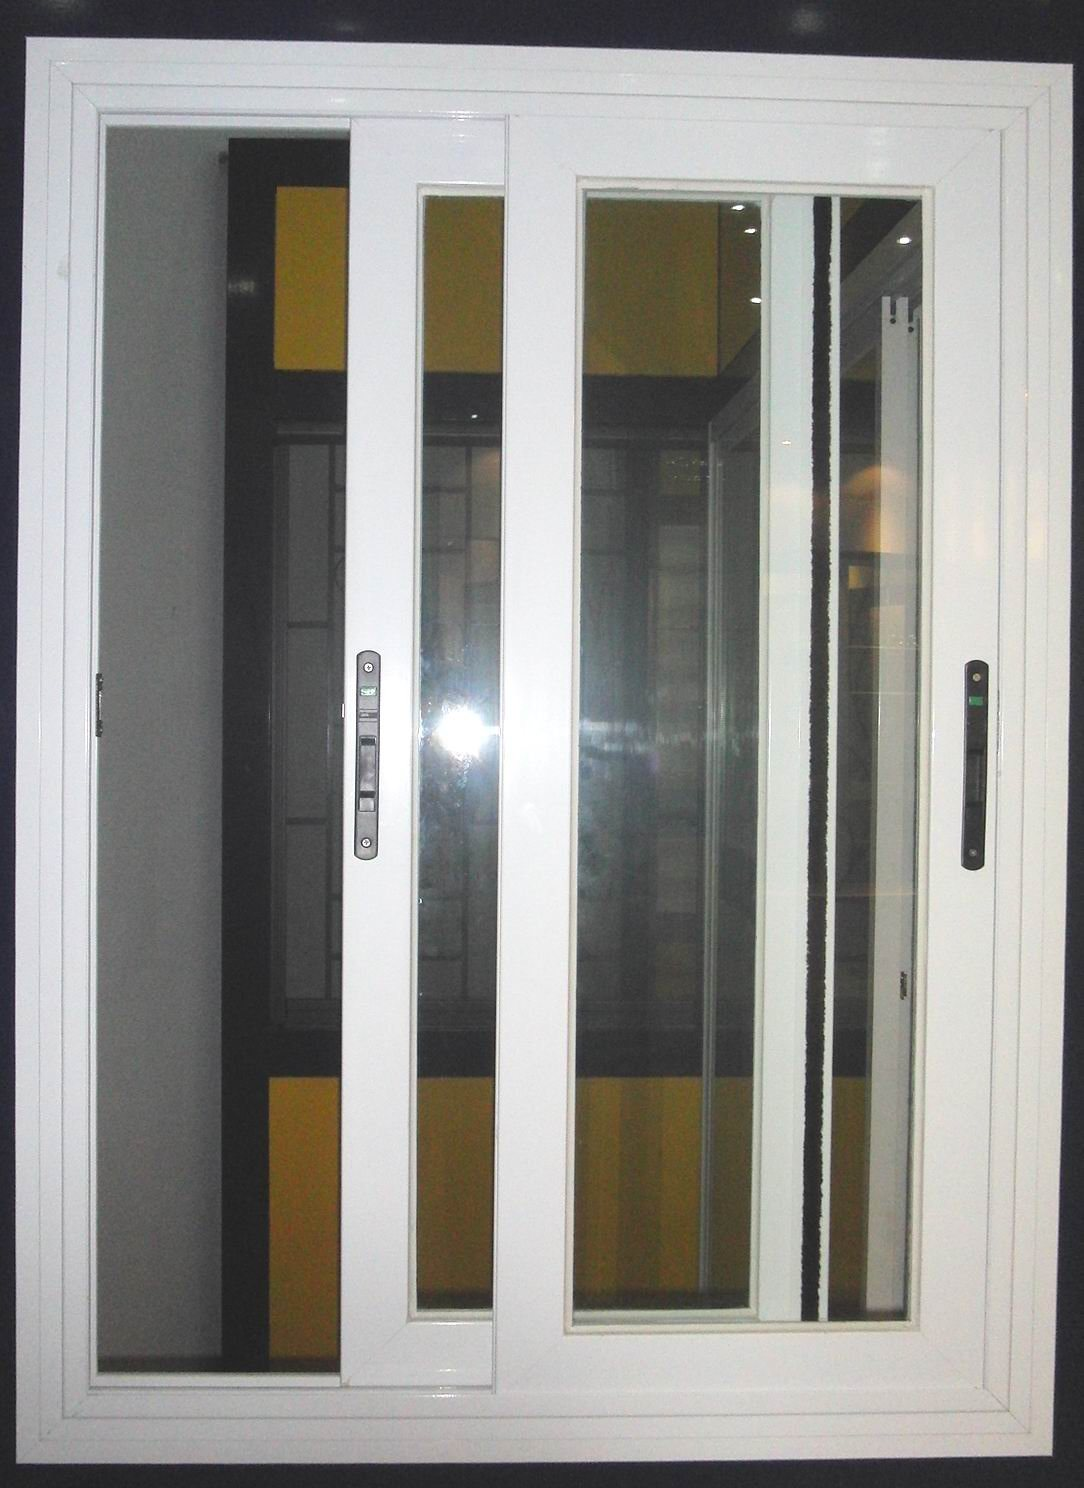 China wanjia upvc sliding window c p s w 001 photos for Cheap sliding glass doors